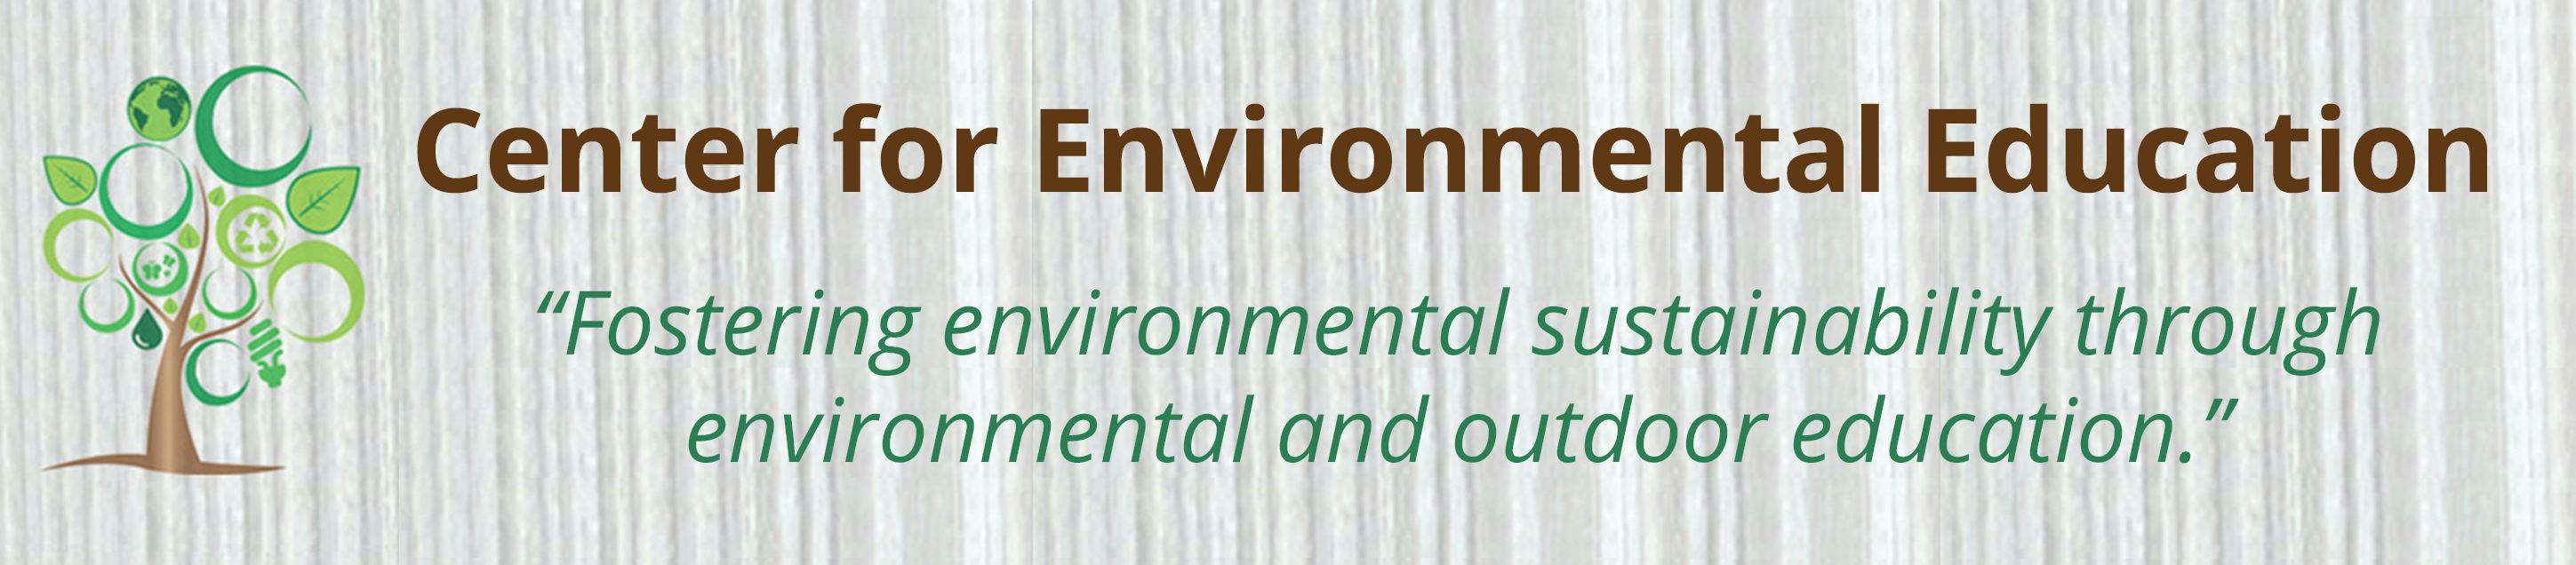 "Center for Environmental Education ""Fostering environmental sustainability through environmental and outdoor education"""